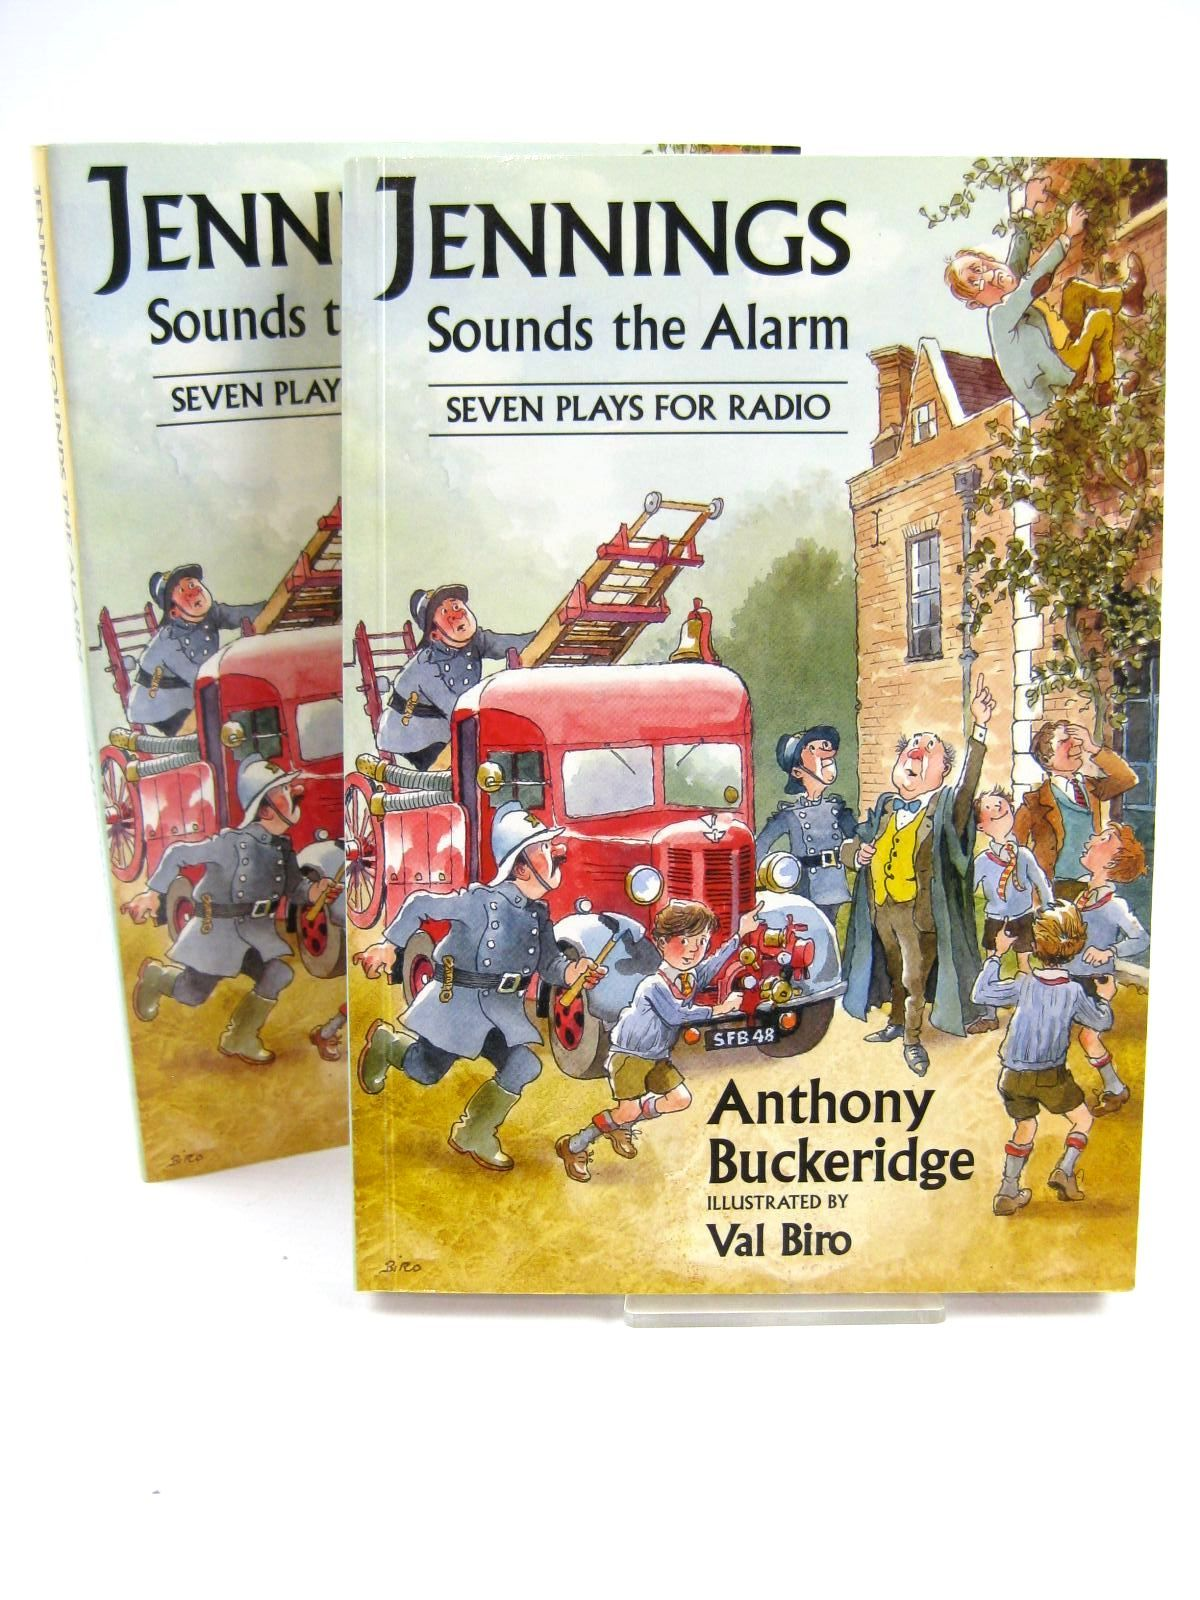 Cover of JENNINGS SOUNDS THE ALARM by Anthony Buckeridge